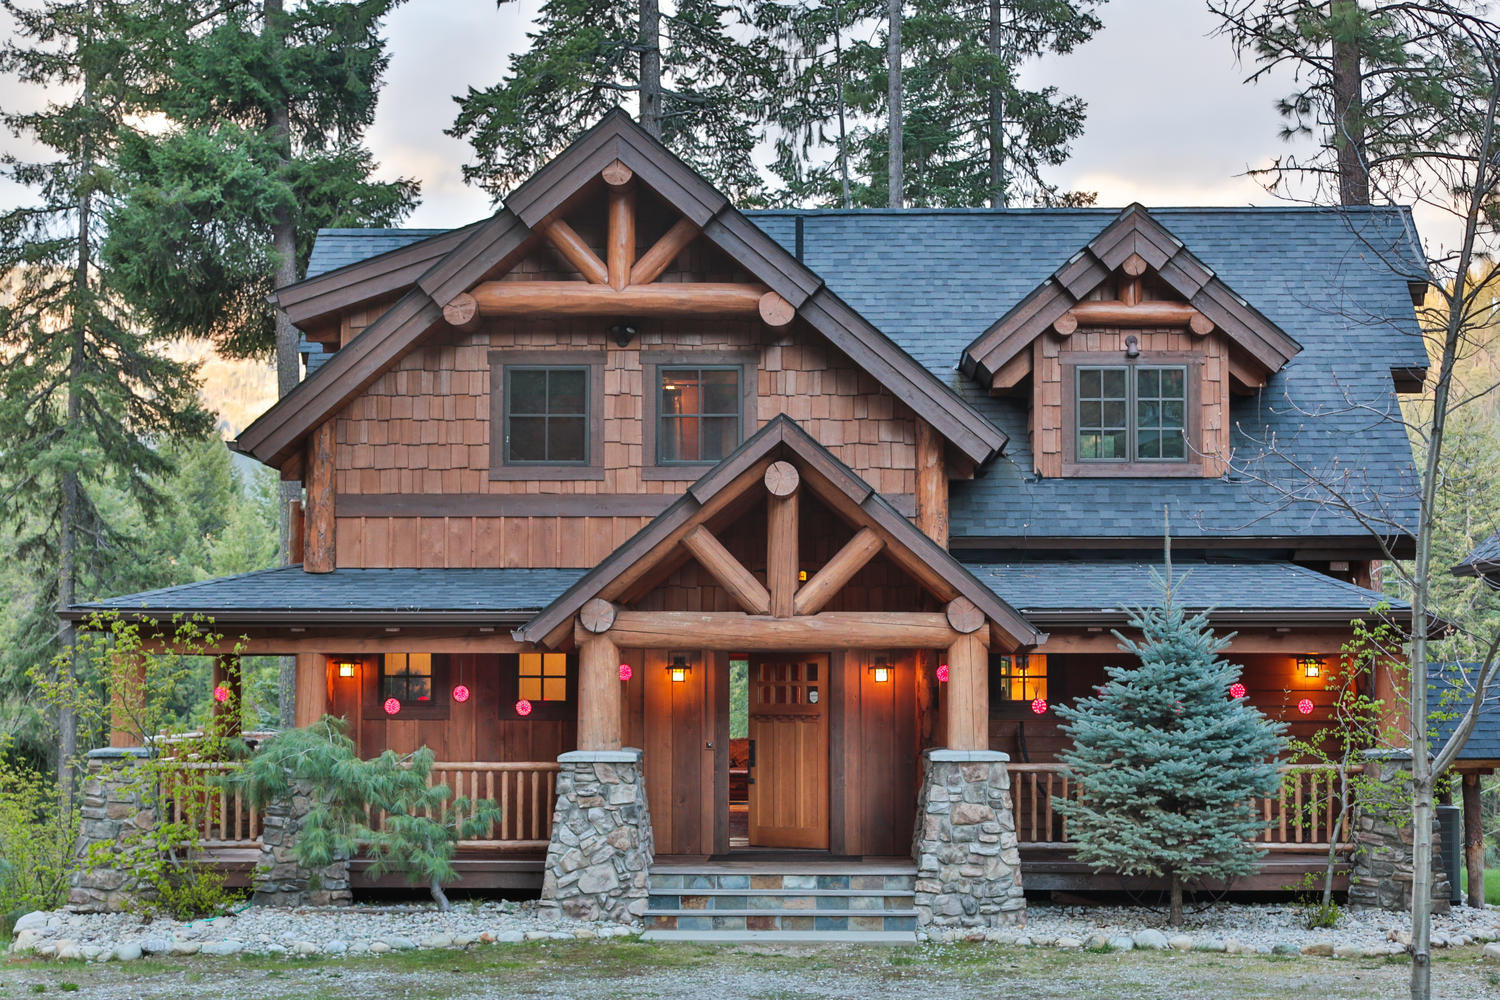 Timber Frame Homes - High Sierra Log and Timber Frame Homes